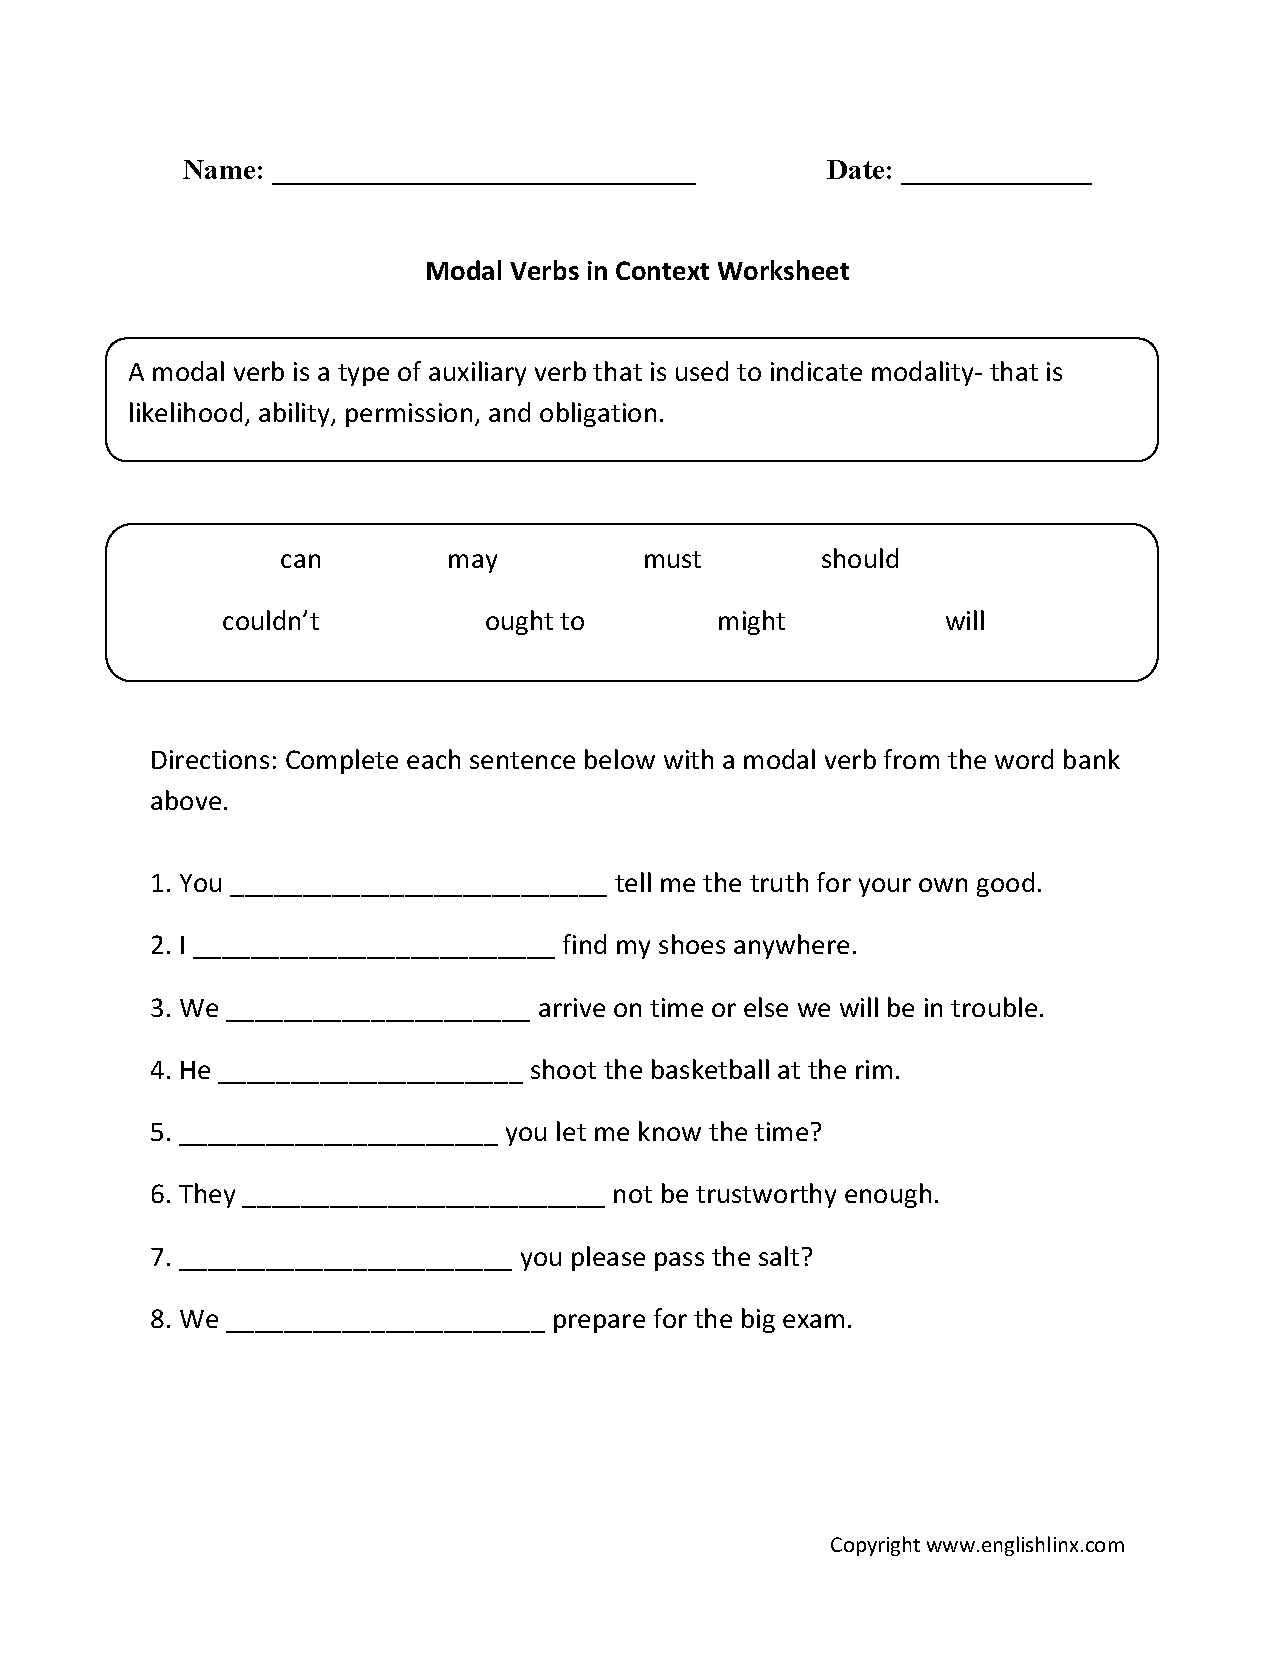 Aldiablosus  Winning Worksheet For Verbs  Coffemix With Outstanding Englishlinxcom  Verbs Worksheets With Nice Map Skills Worksheets Nd Grade Also Esl Money Worksheets In Addition Area Of Circle Worksheets And Days Of The Week In Spanish Worksheets As Well As Electron Dot Structure Worksheet With Answers Additionally Non Cash Contributions Worksheet From Coffemixcom With Aldiablosus  Outstanding Worksheet For Verbs  Coffemix With Nice Englishlinxcom  Verbs Worksheets And Winning Map Skills Worksheets Nd Grade Also Esl Money Worksheets In Addition Area Of Circle Worksheets From Coffemixcom